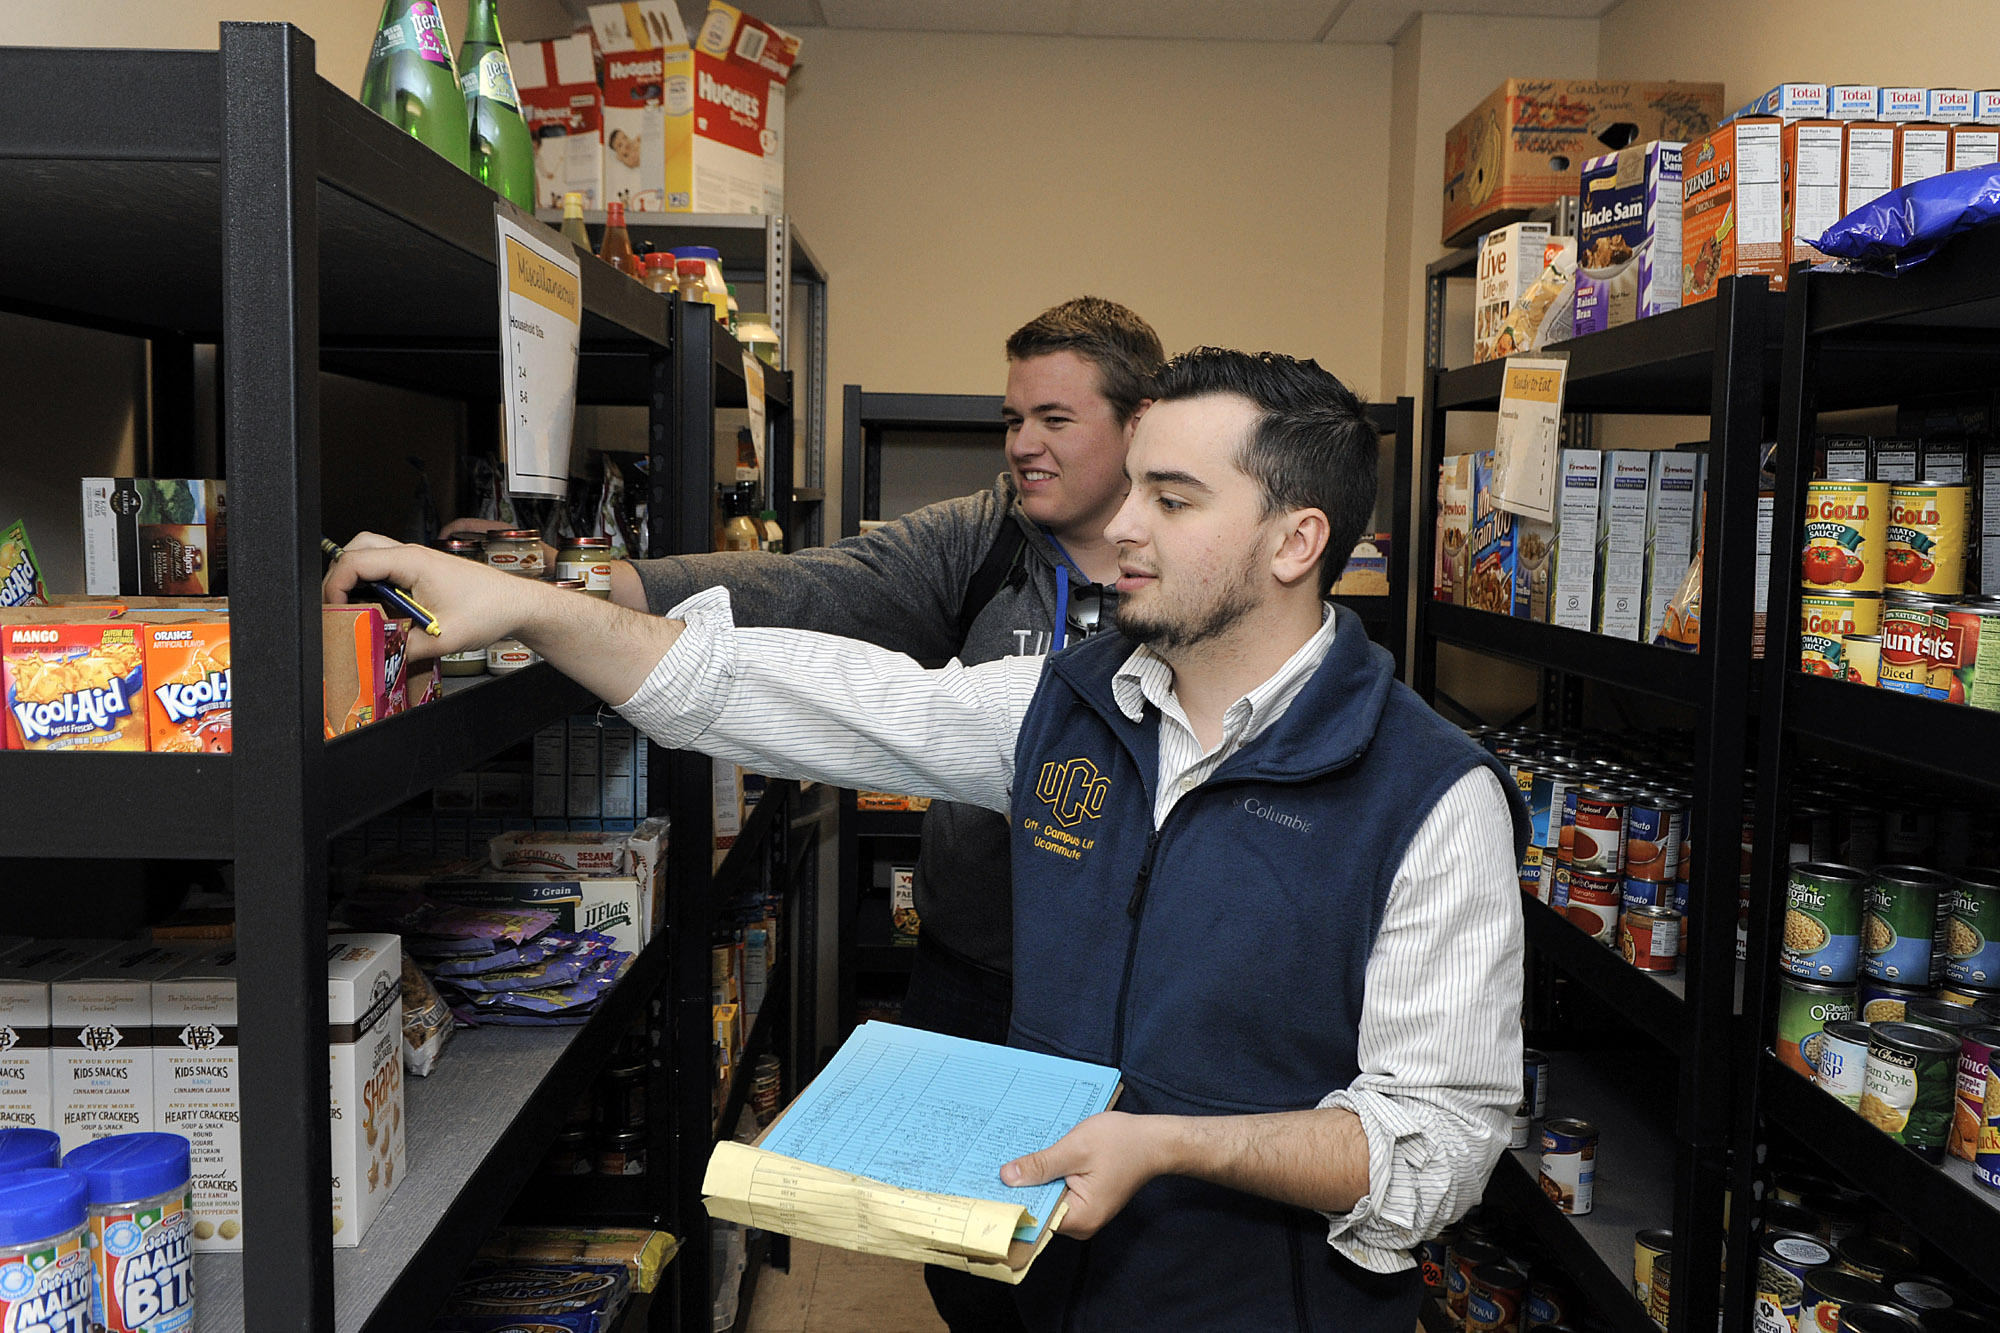 University of Central Oklahoma students Joel Richardson and Seth Williams volunteer at the Central Pantry. The pantry recently marked a year of service to campus.